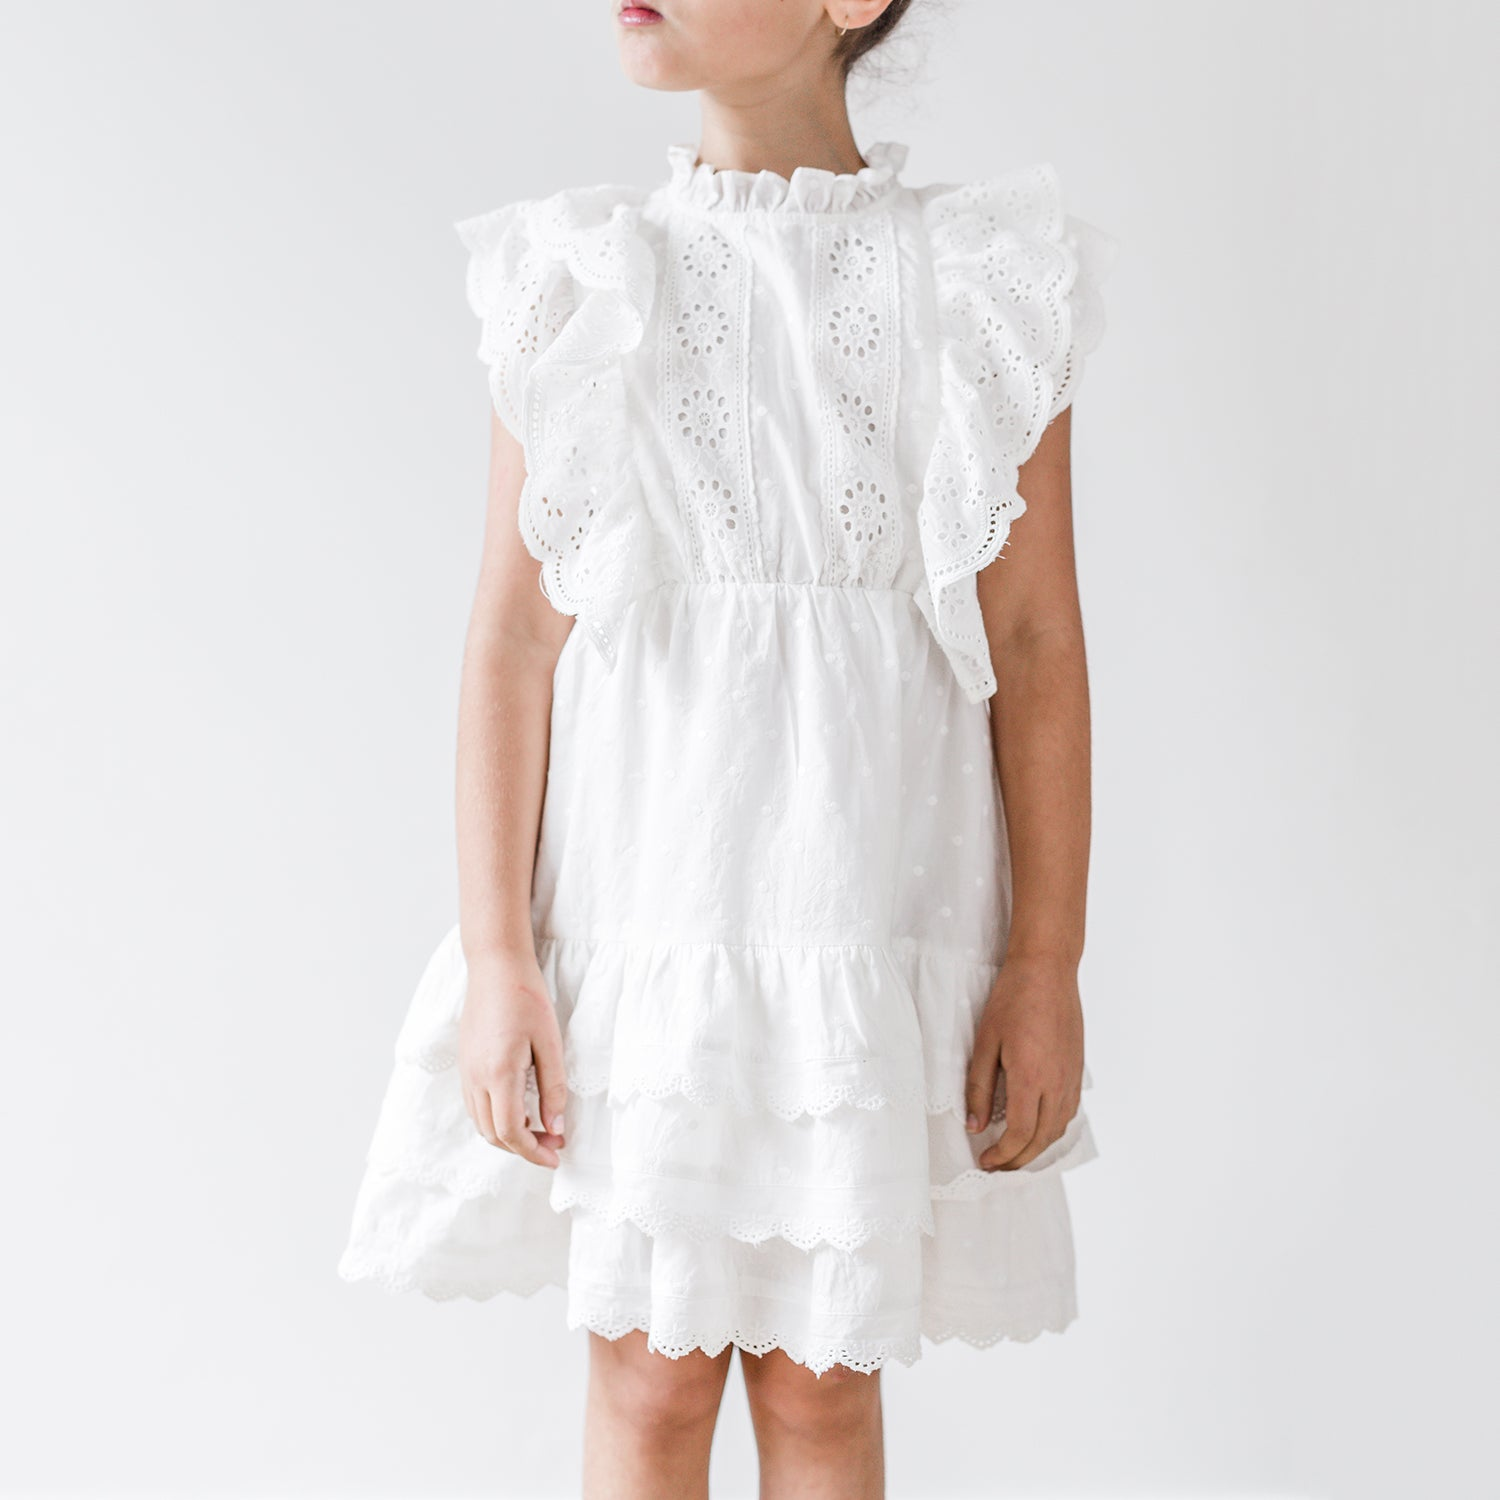 yoya, kids, girls, petite amalie, summer, lightweight, dressy casual, embroidered, eyelet lace, ruffle shoulder, sleeveless, tiered, flounce, midi dress